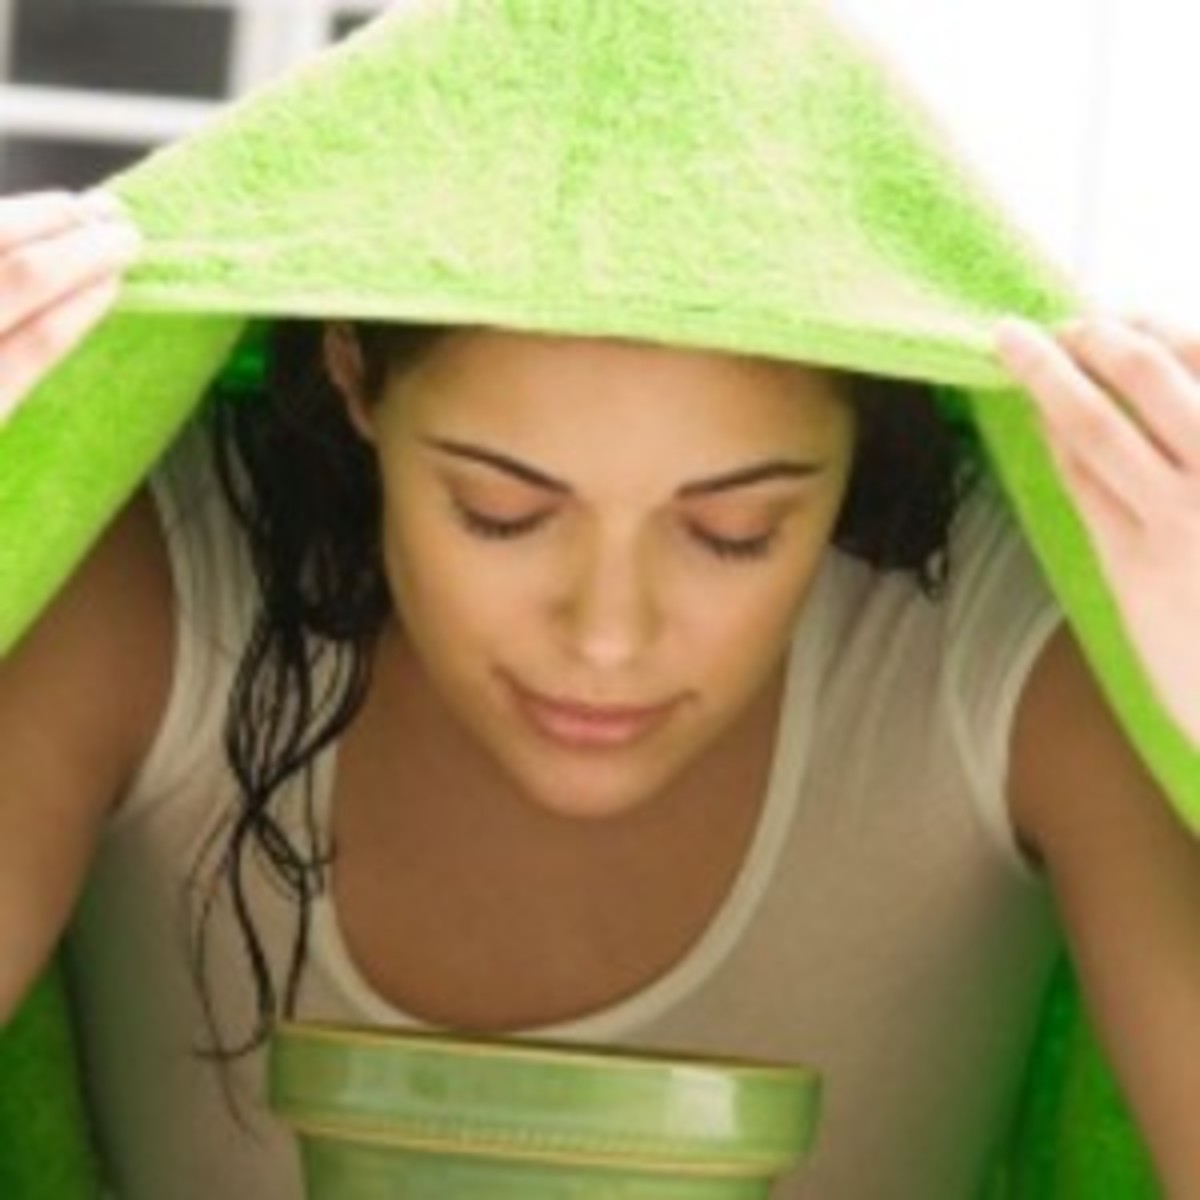 Steaming Helps in Blackheads Removal